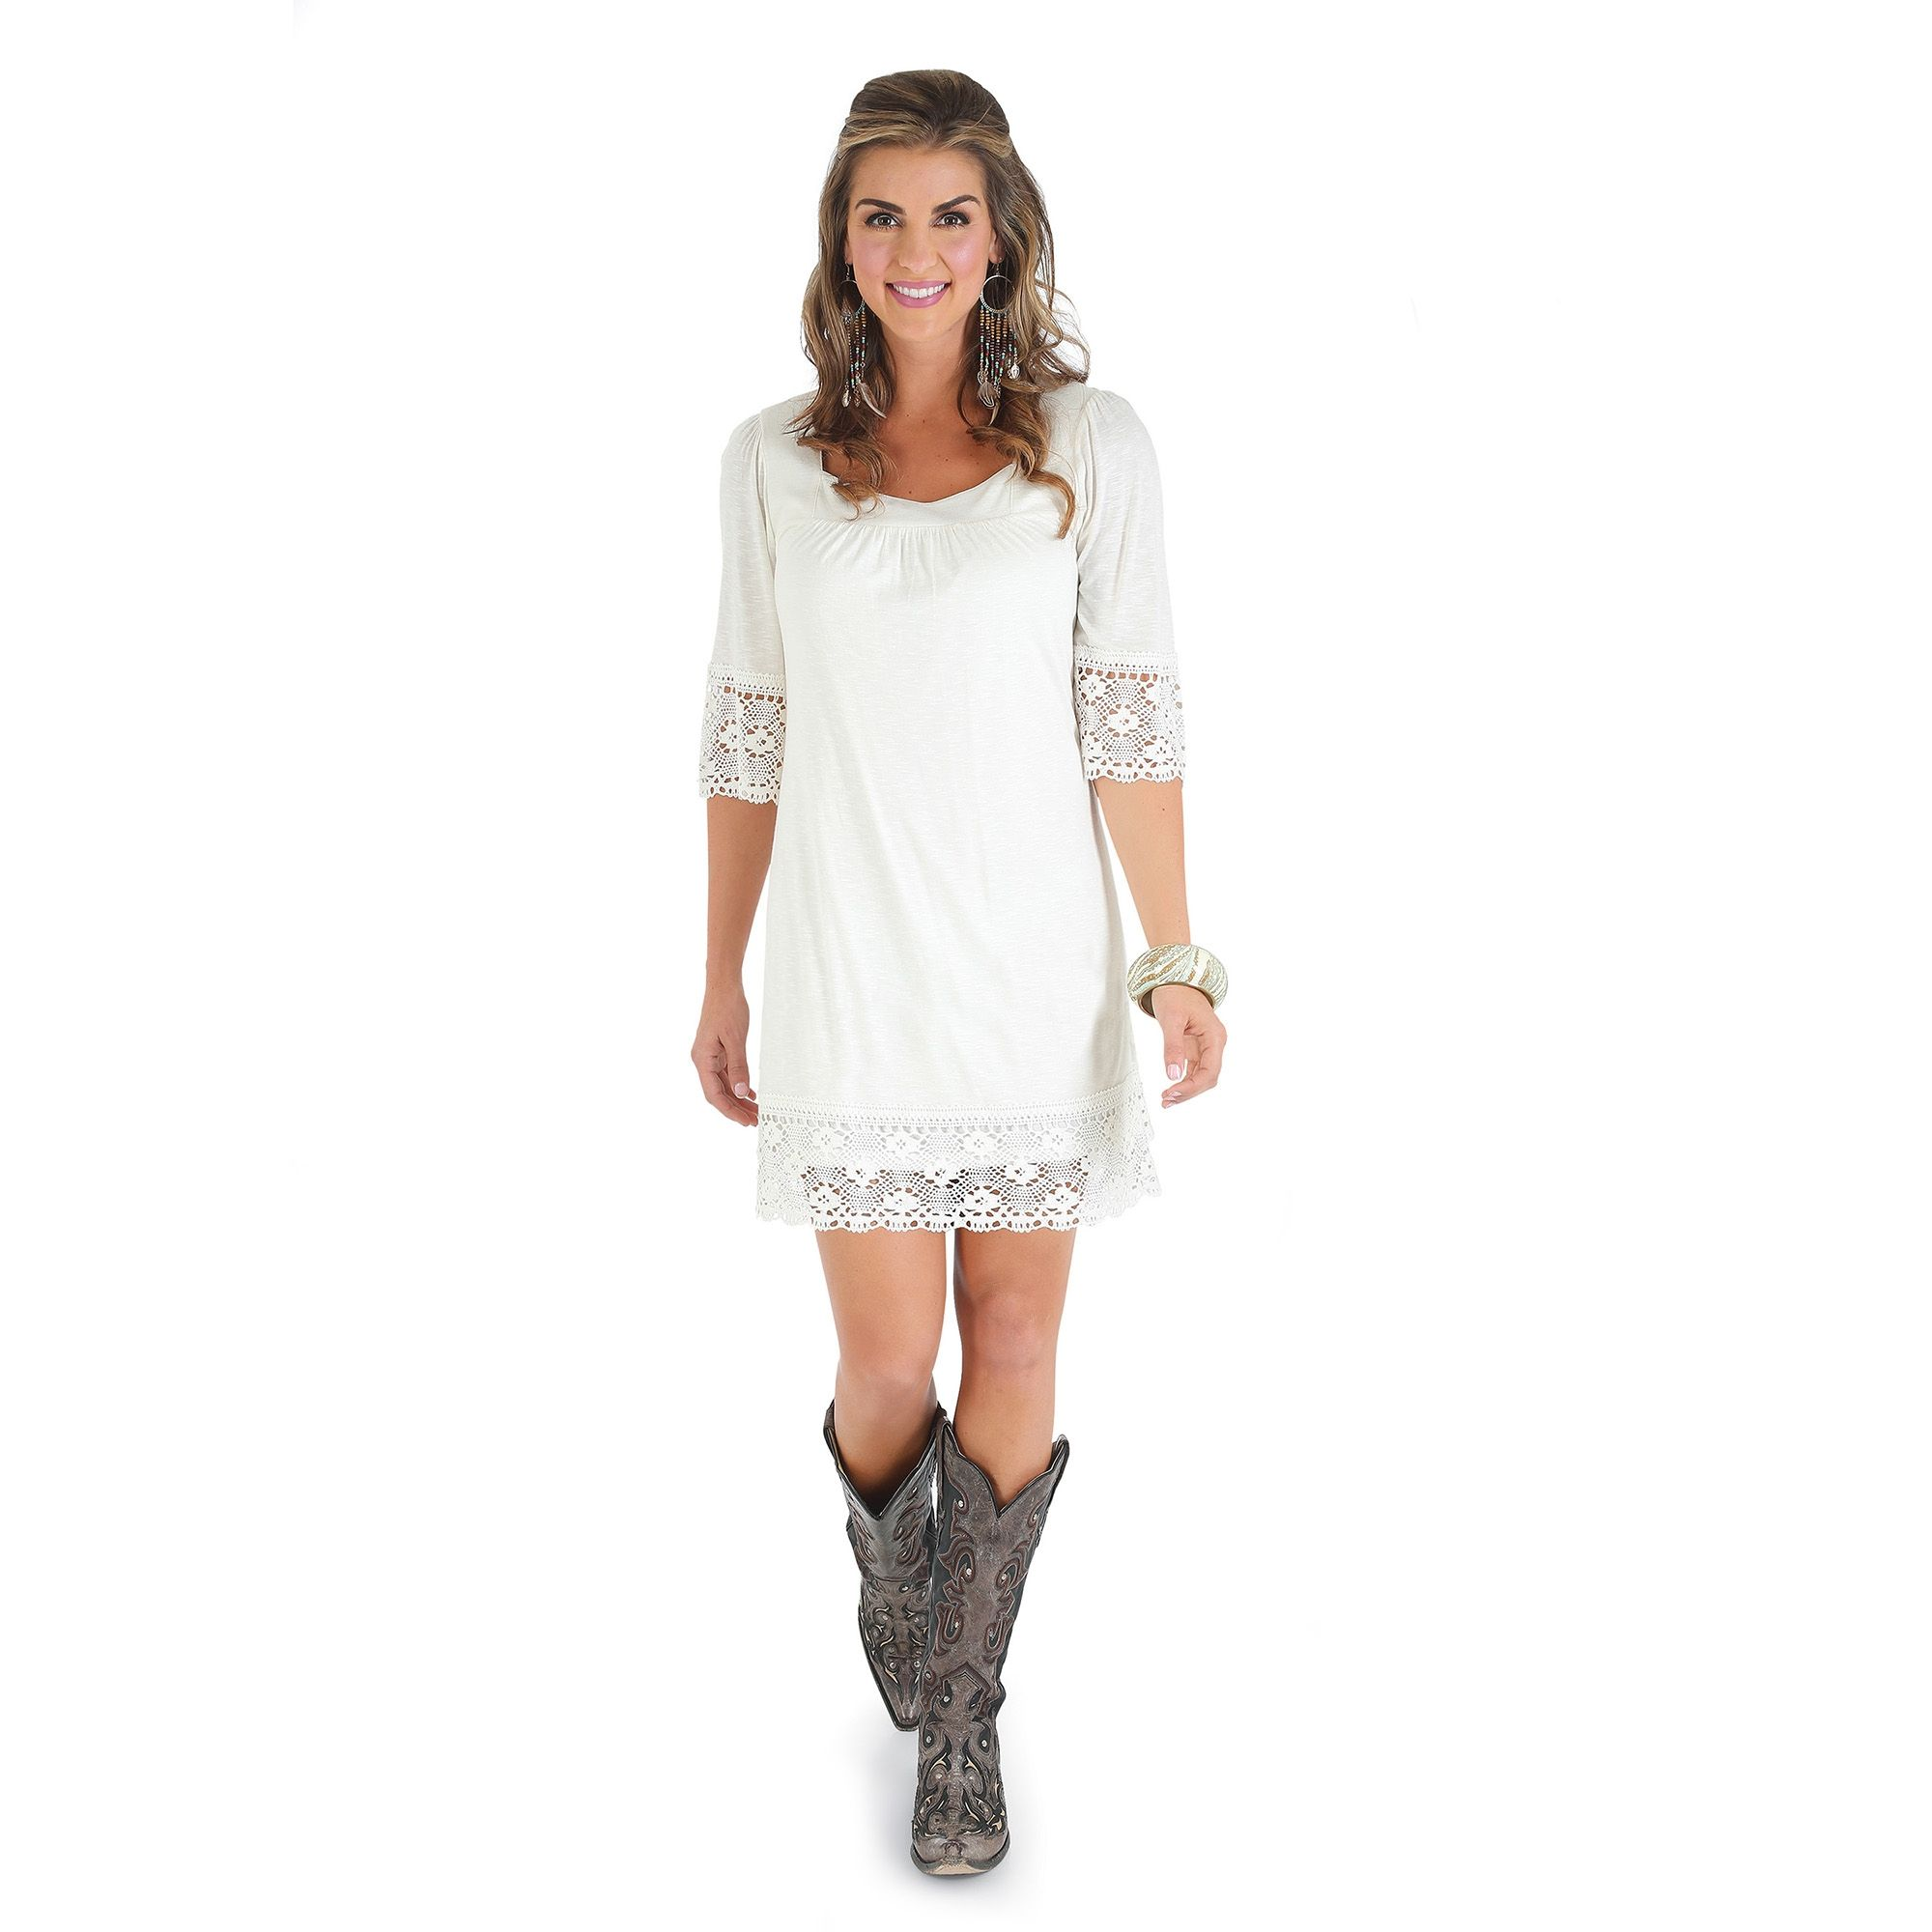 Wrangler Western Model Paige Duke In White Short Sleeve Dress With Crochet At Sleeves And Bottom Womens Shift Dresses White Short Sleeve Dress Cowgirl Dresses [ 2000 x 2000 Pixel ]